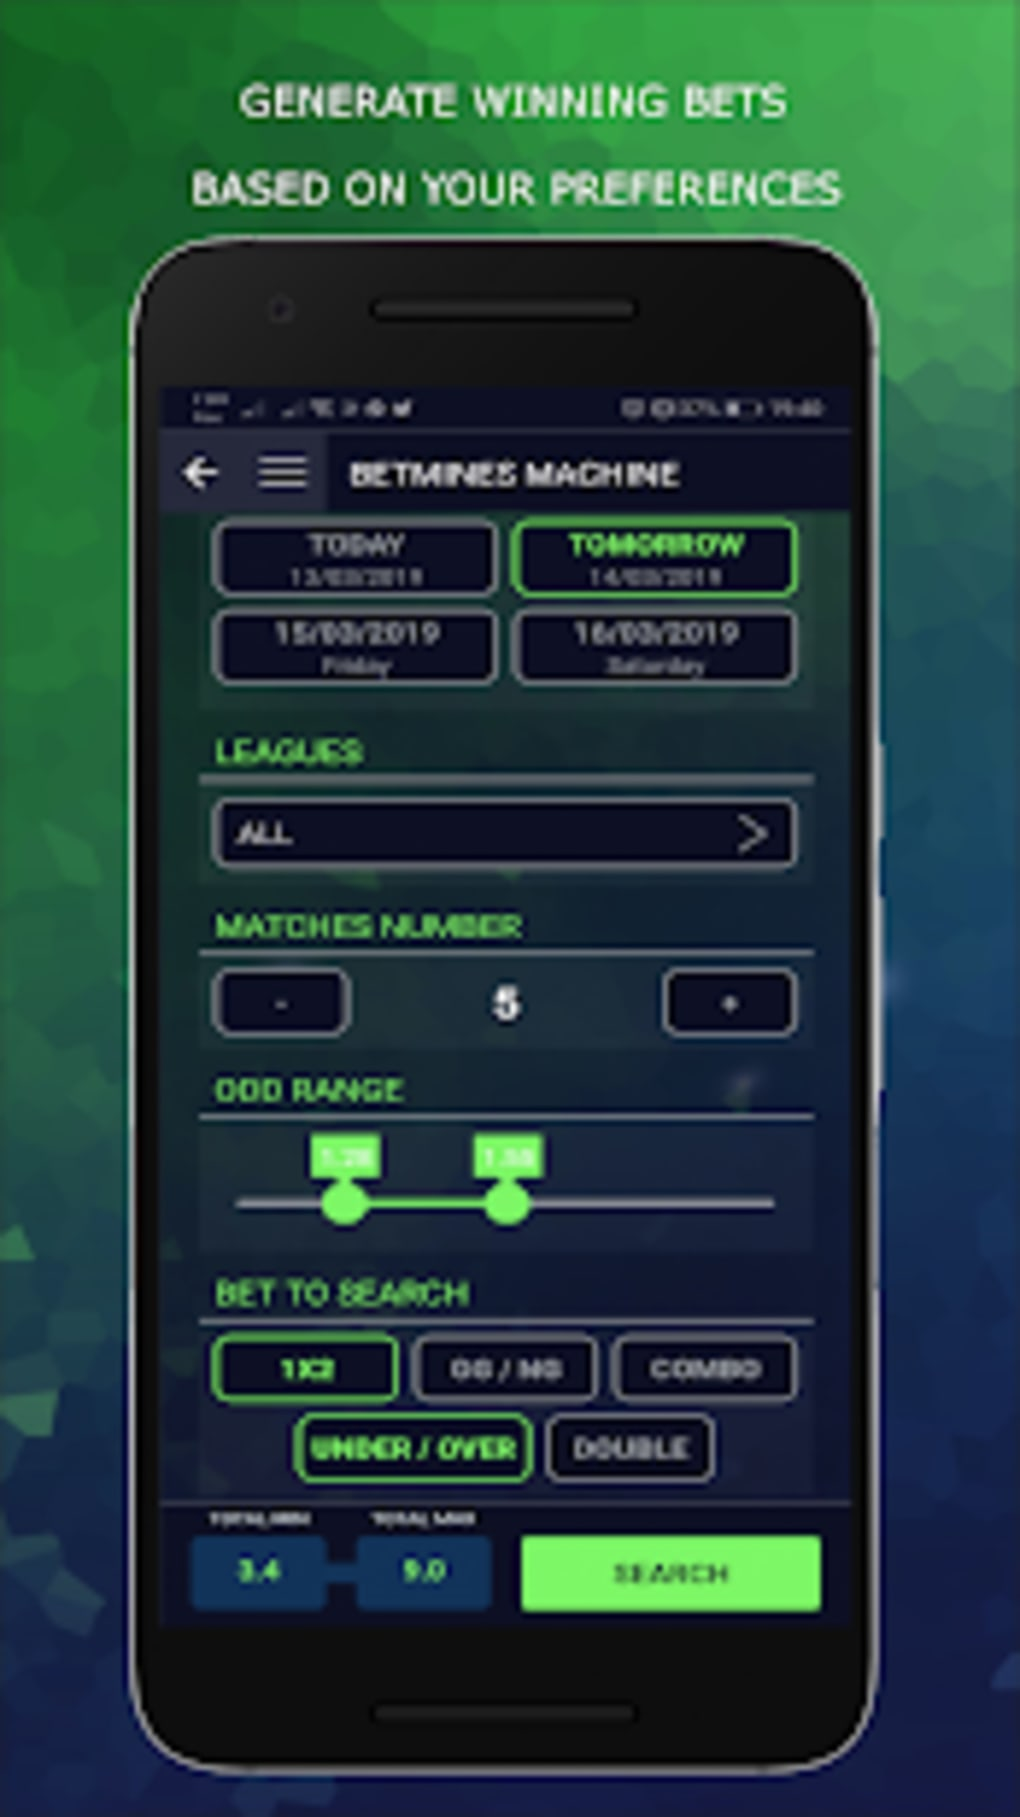 BetMines - Betting Tips Football for Android - Download